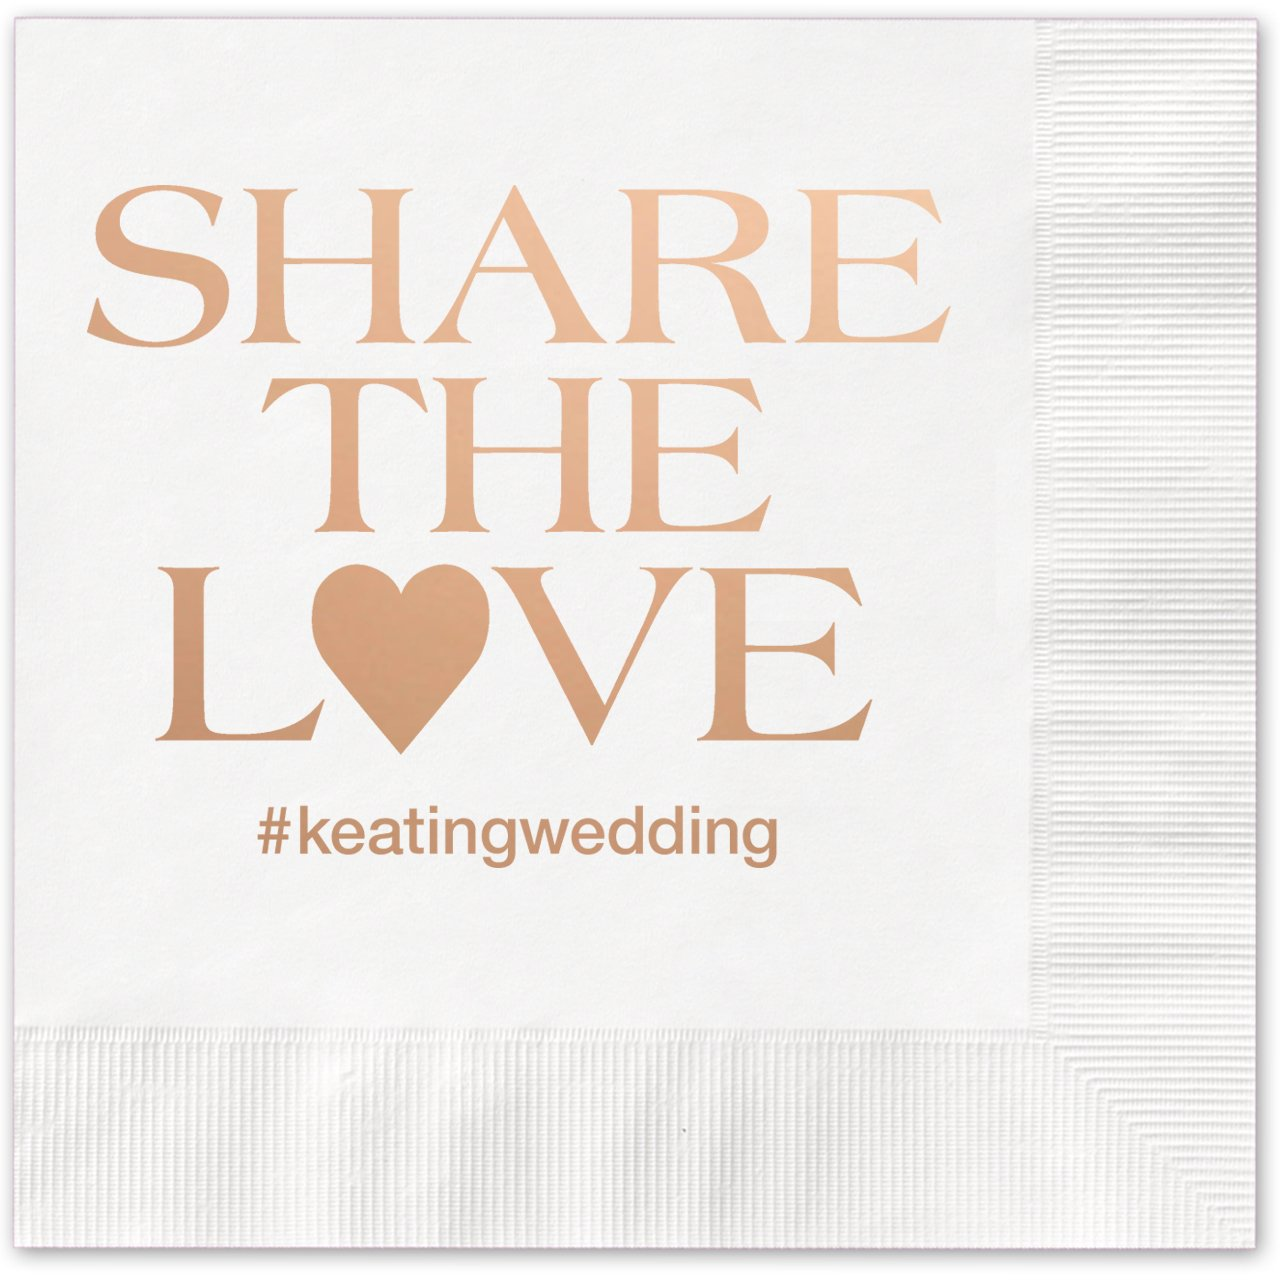 Share the Love Hashtag Personalized Beverage Cocktail Napkins - 100 Custom Printed White Paper Napkins with choice of foil